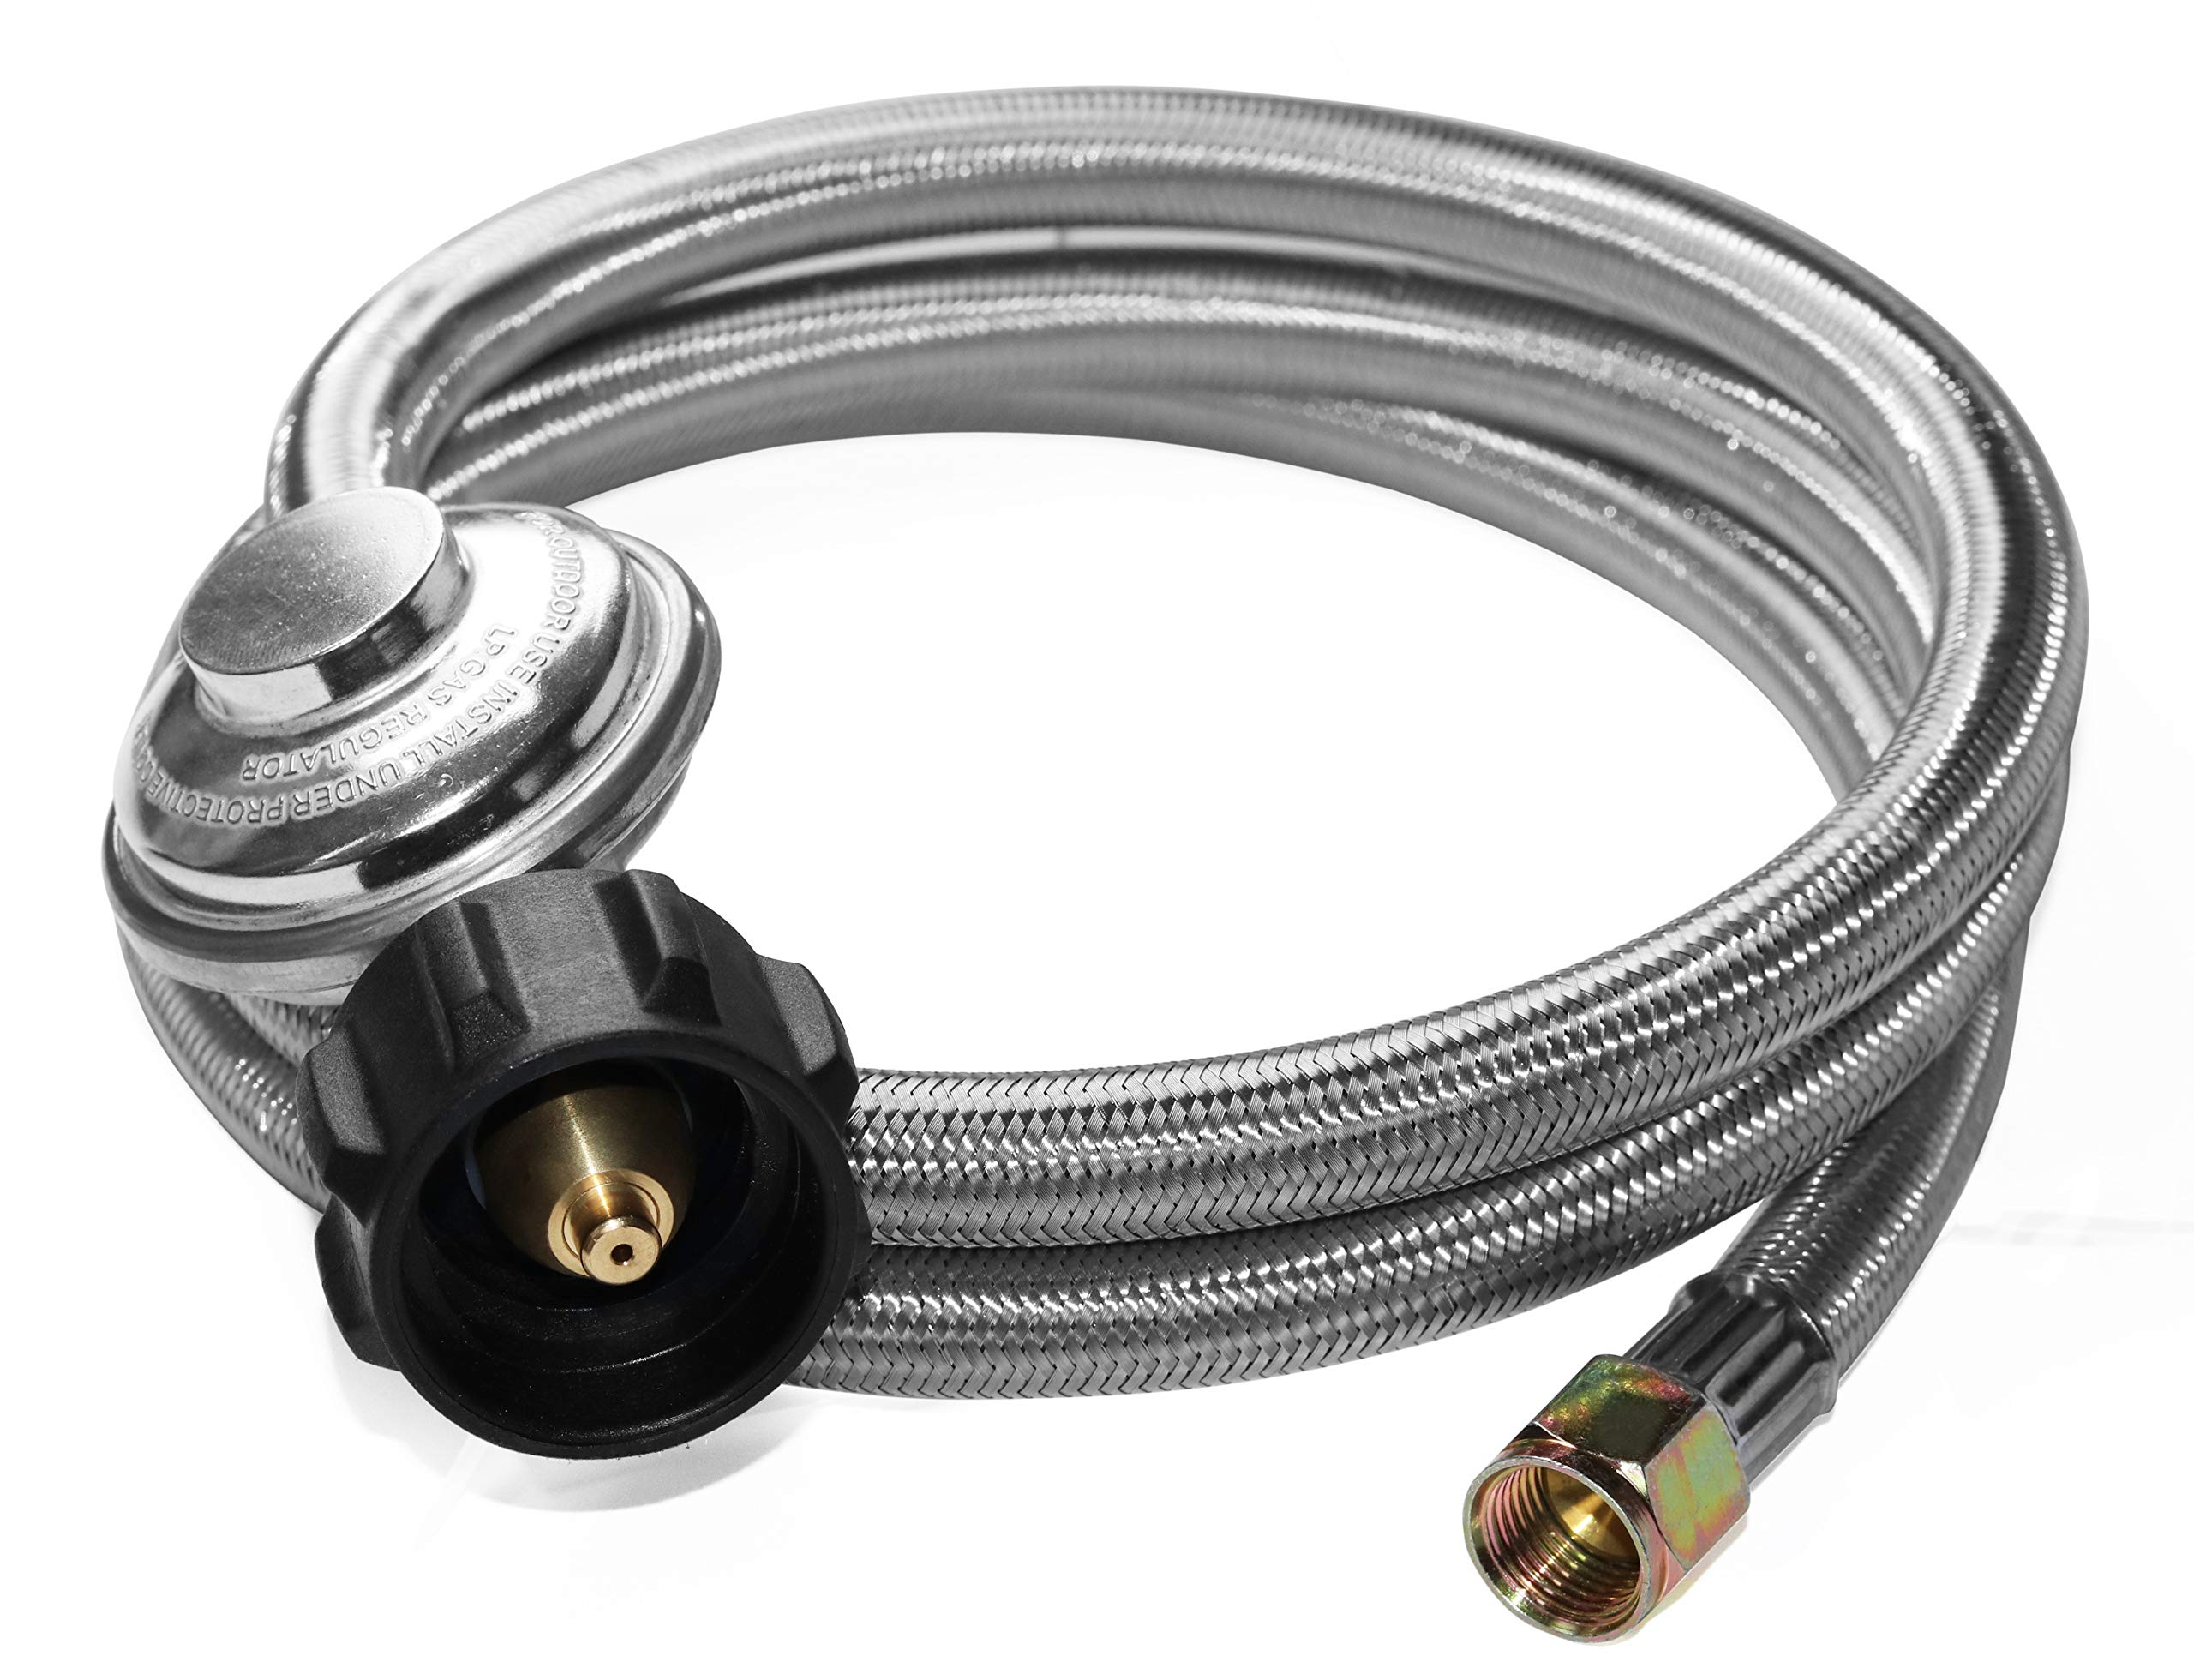 DOZYANT 5 Feet Universal QCC1 Low Pressure Propane Regulator Replacement with Stainless Steel Braided Hose for Most LP Gas Grill, Heater and Fire Pit Table, 3/8'' Female Flare Nut, SS